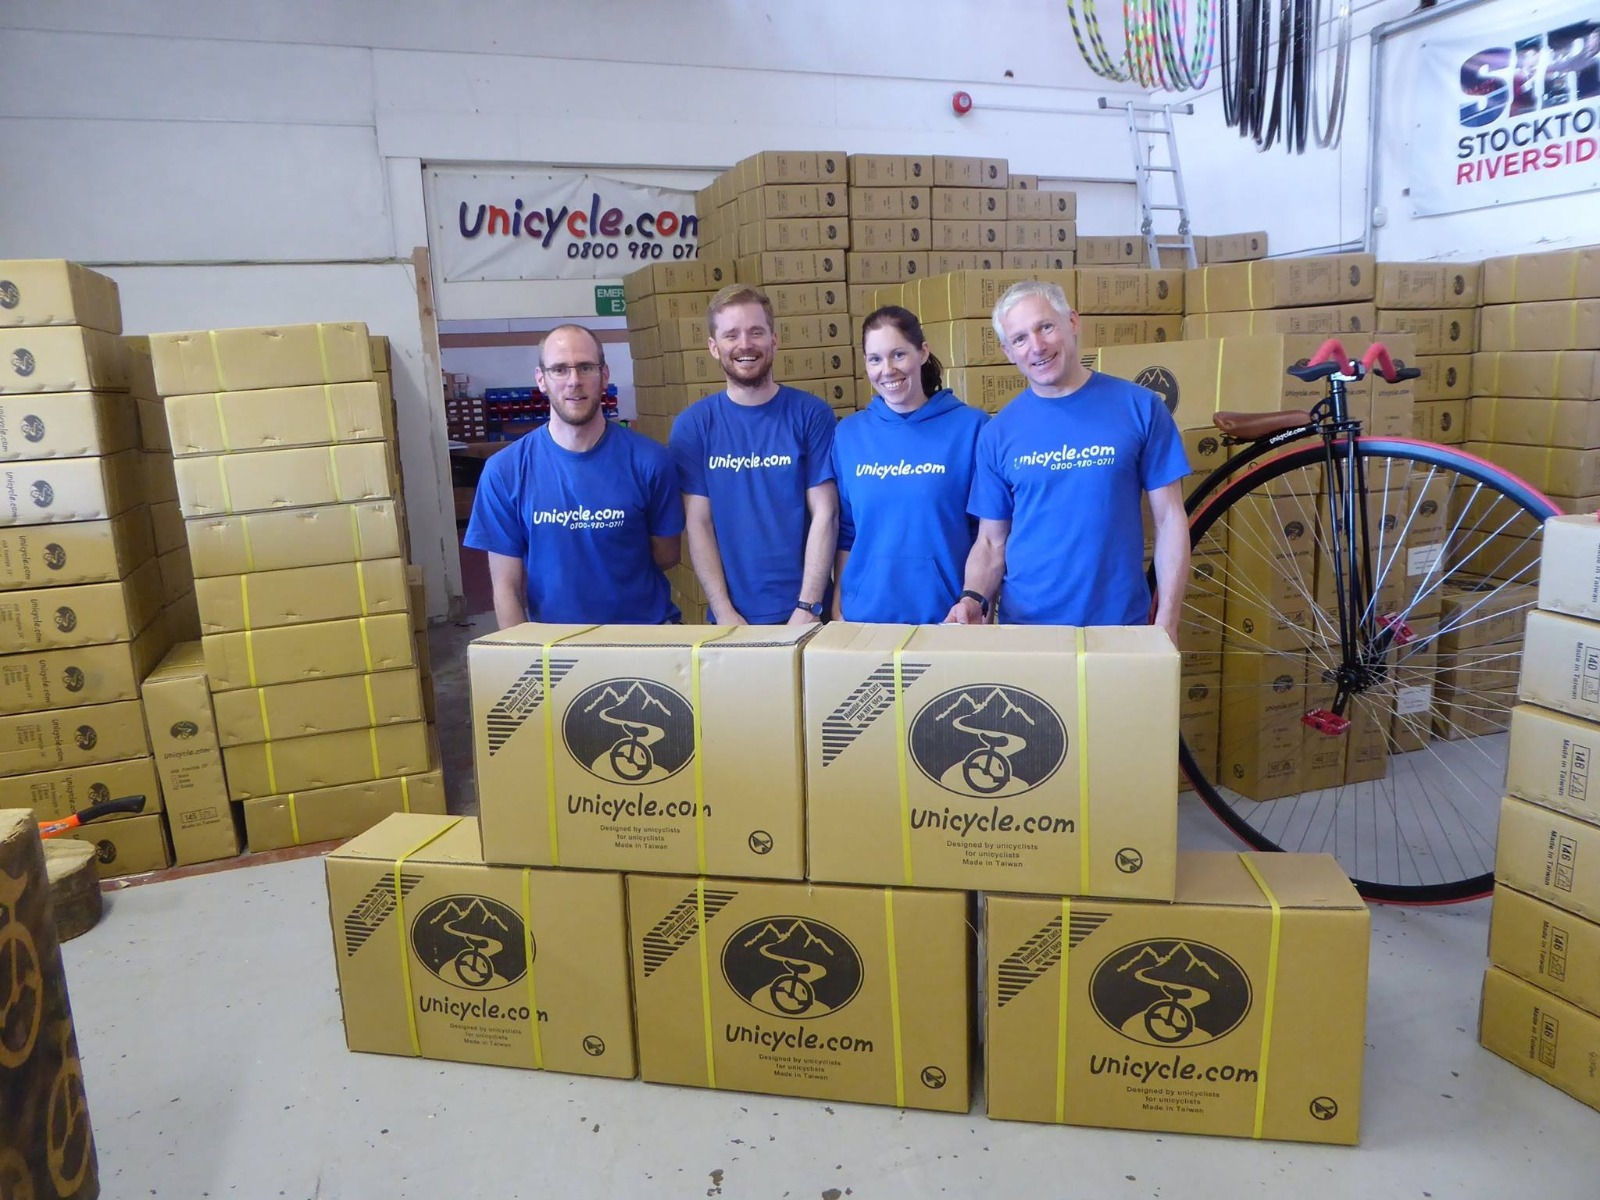 Unicycle.com (UK) Staff